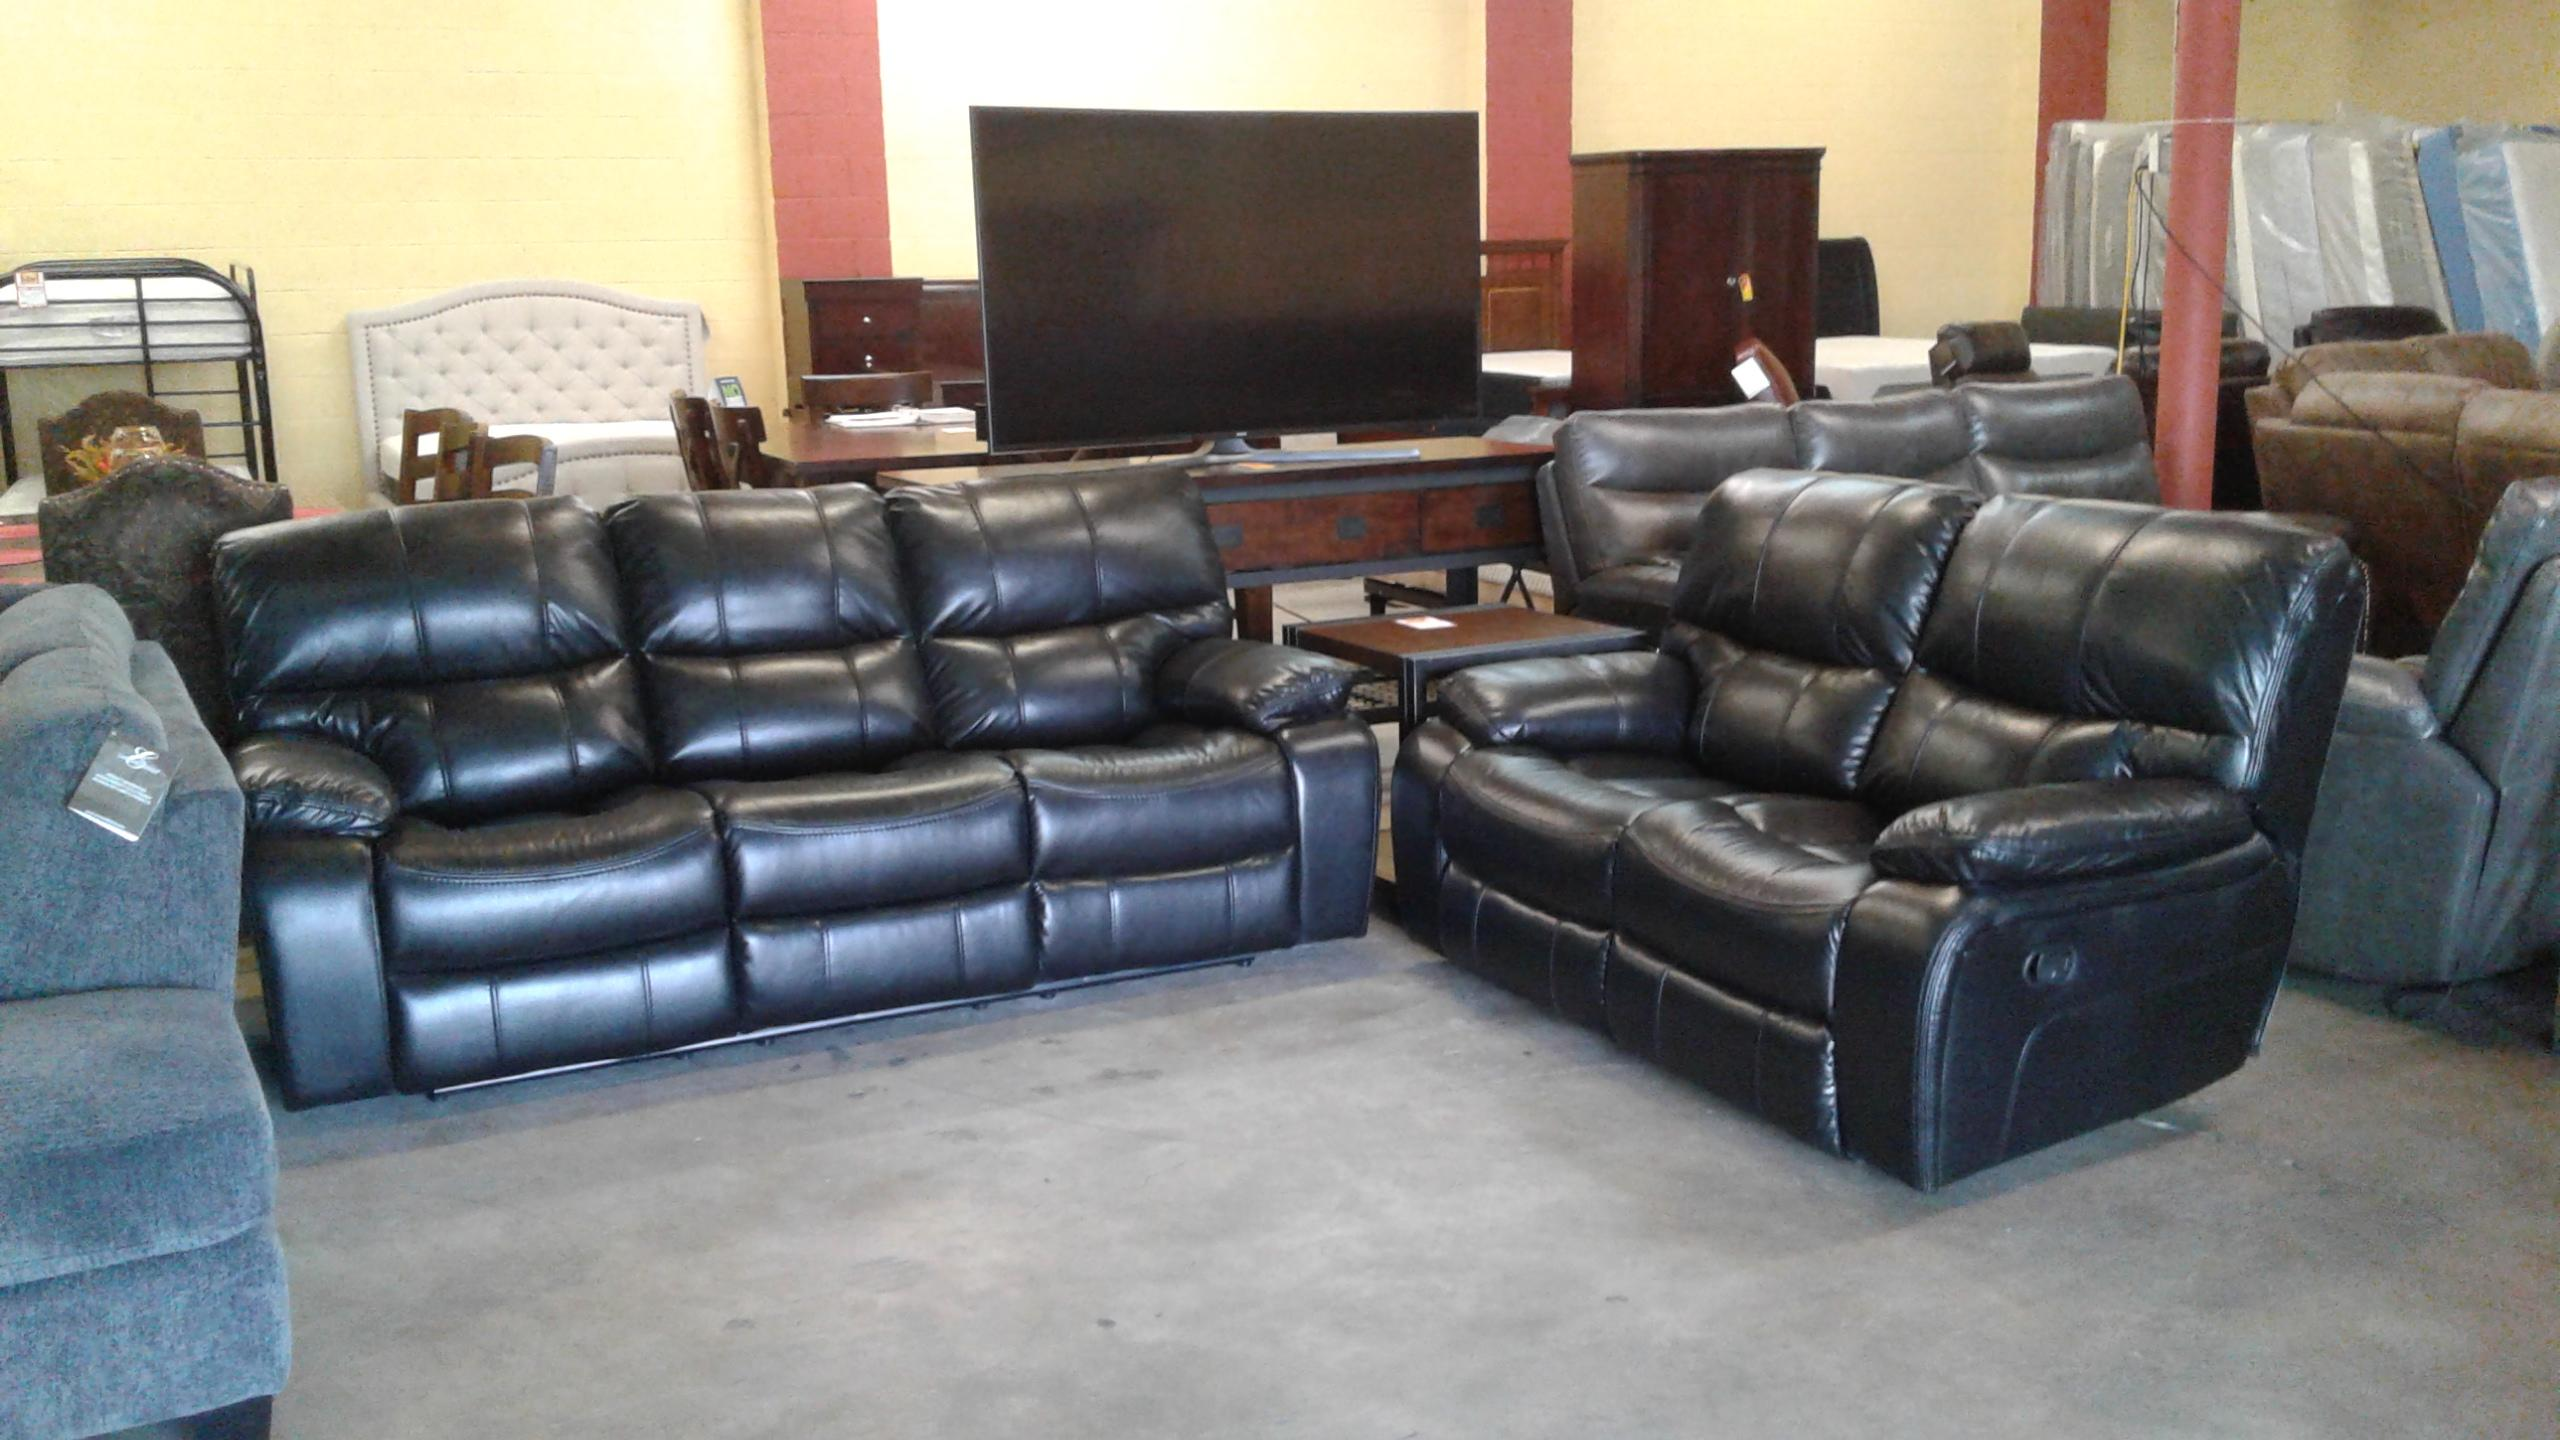 Ace furniture in yakima wa 98901 for Furniture yakima